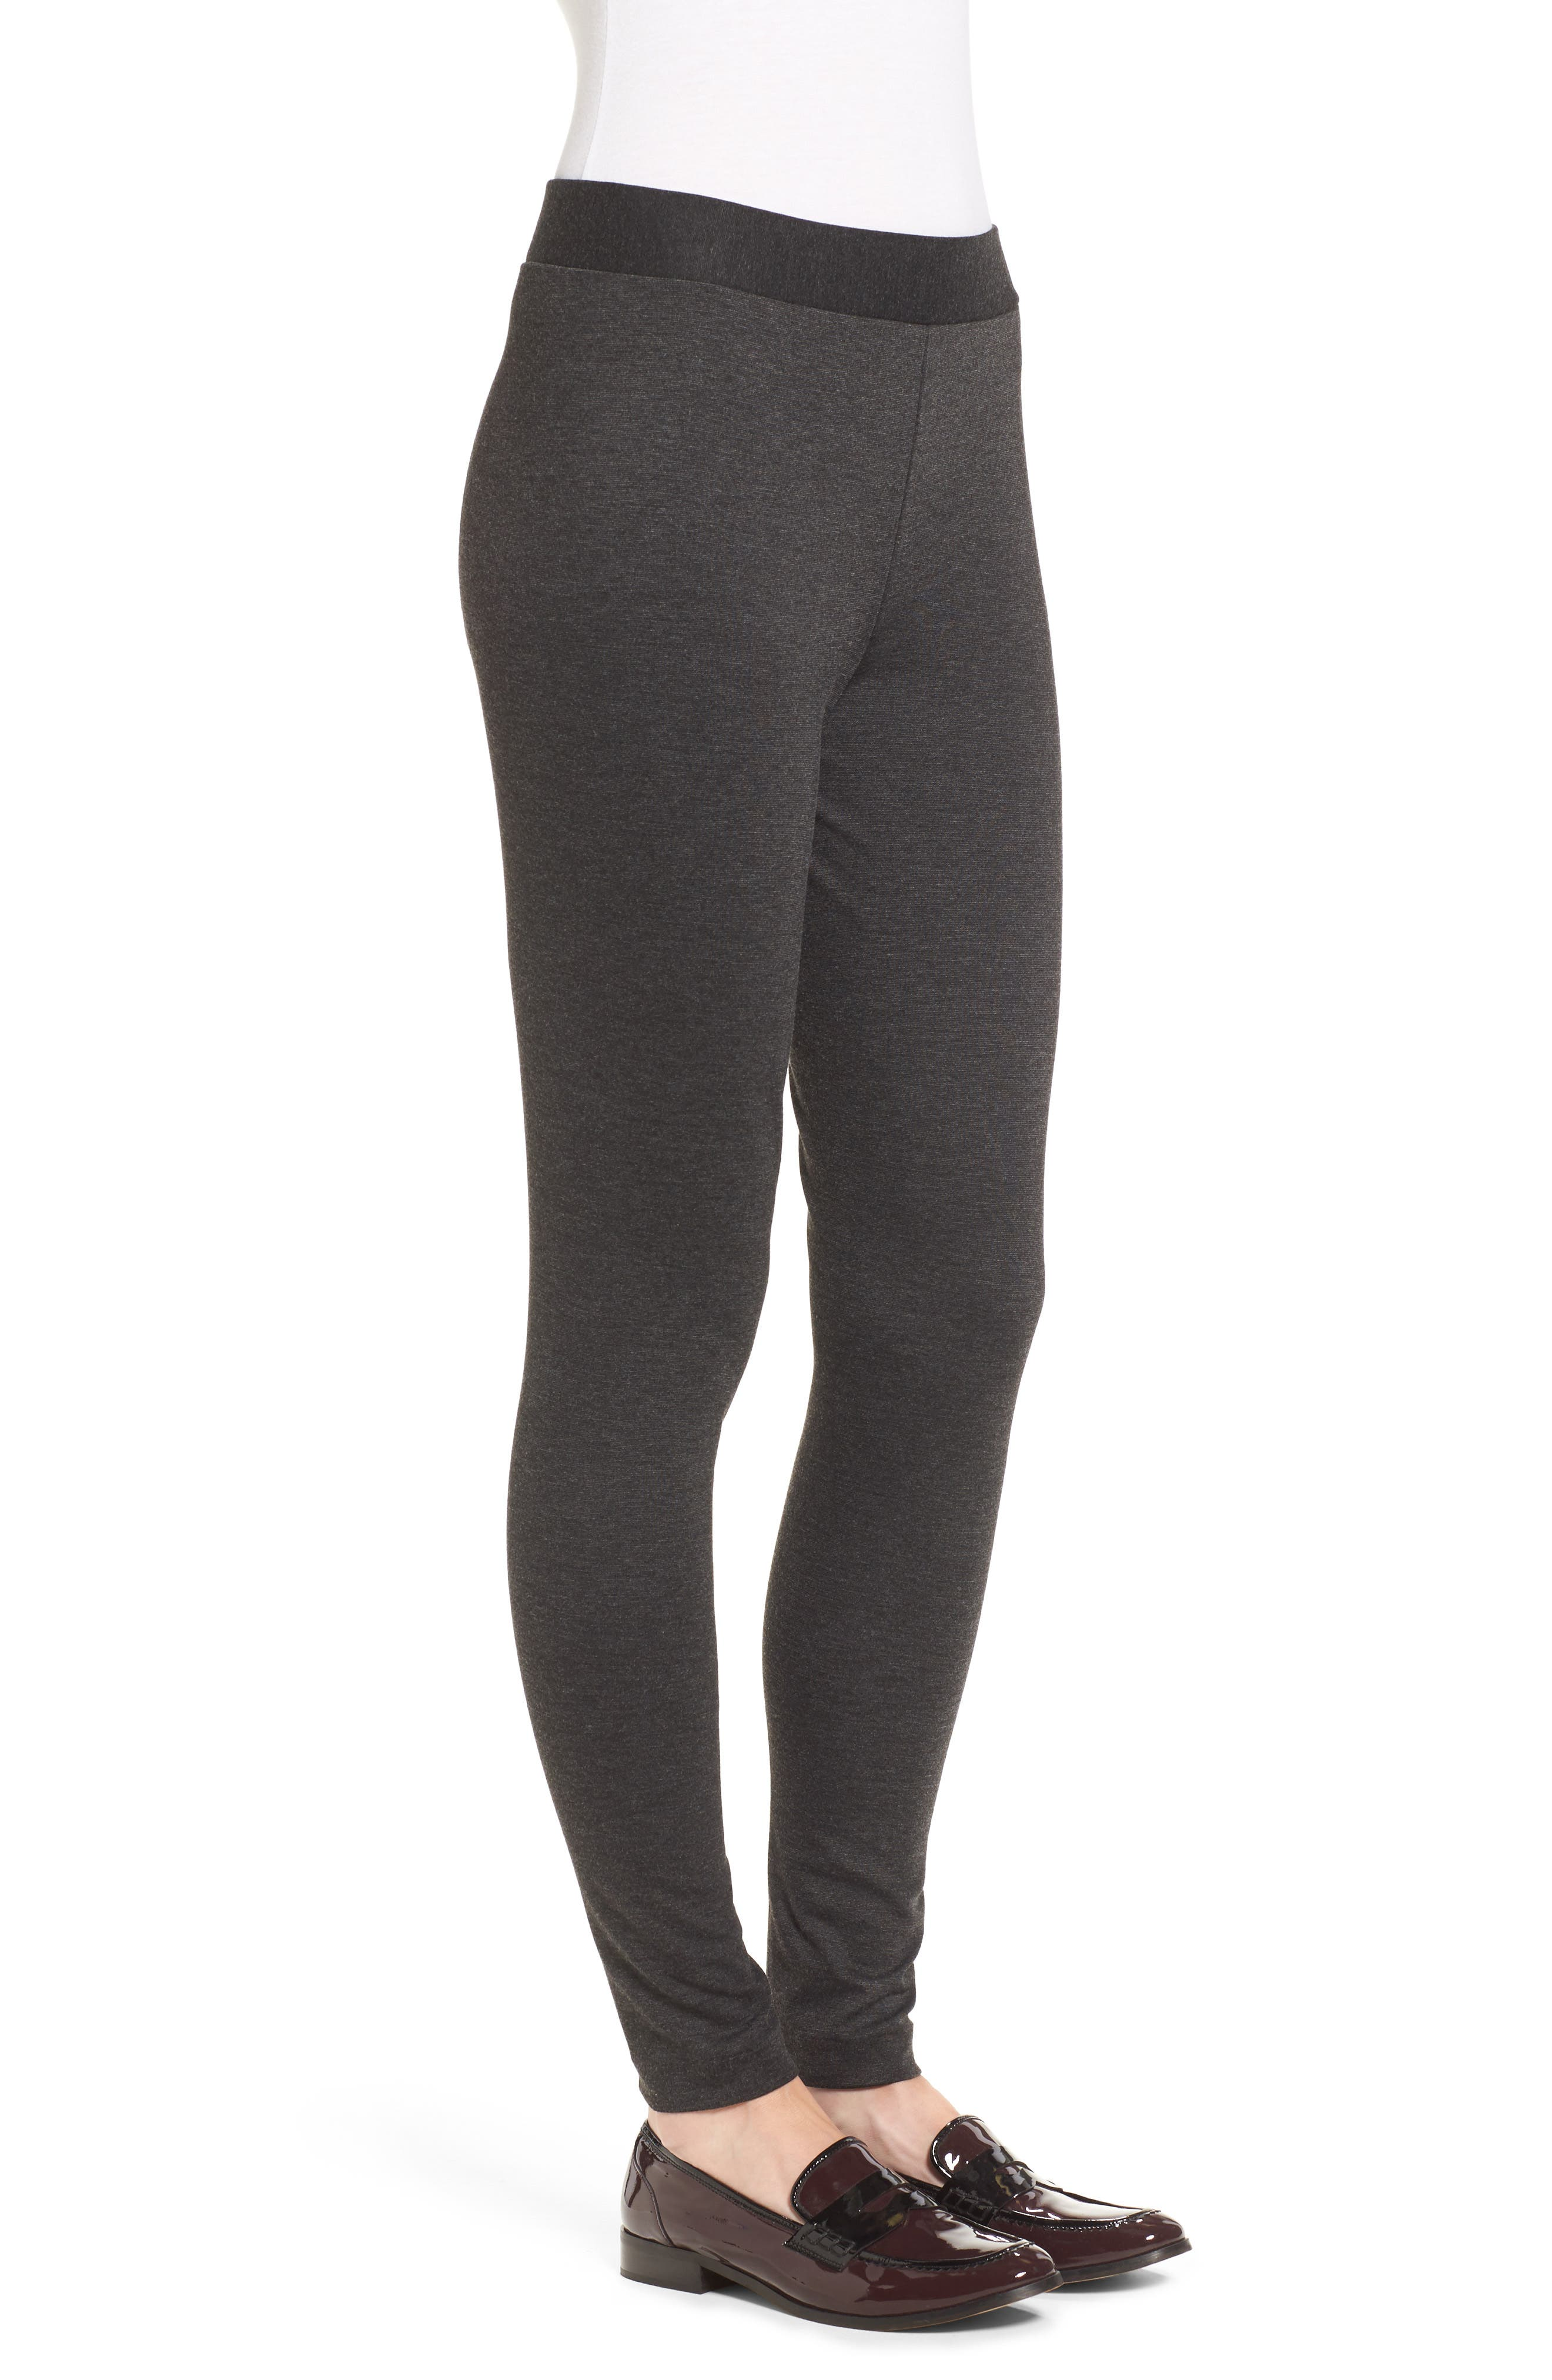 Two by Vince Camuto Seamed Back Leggings,                             Alternate thumbnail 3, color,                             DARK HEATHER GREY